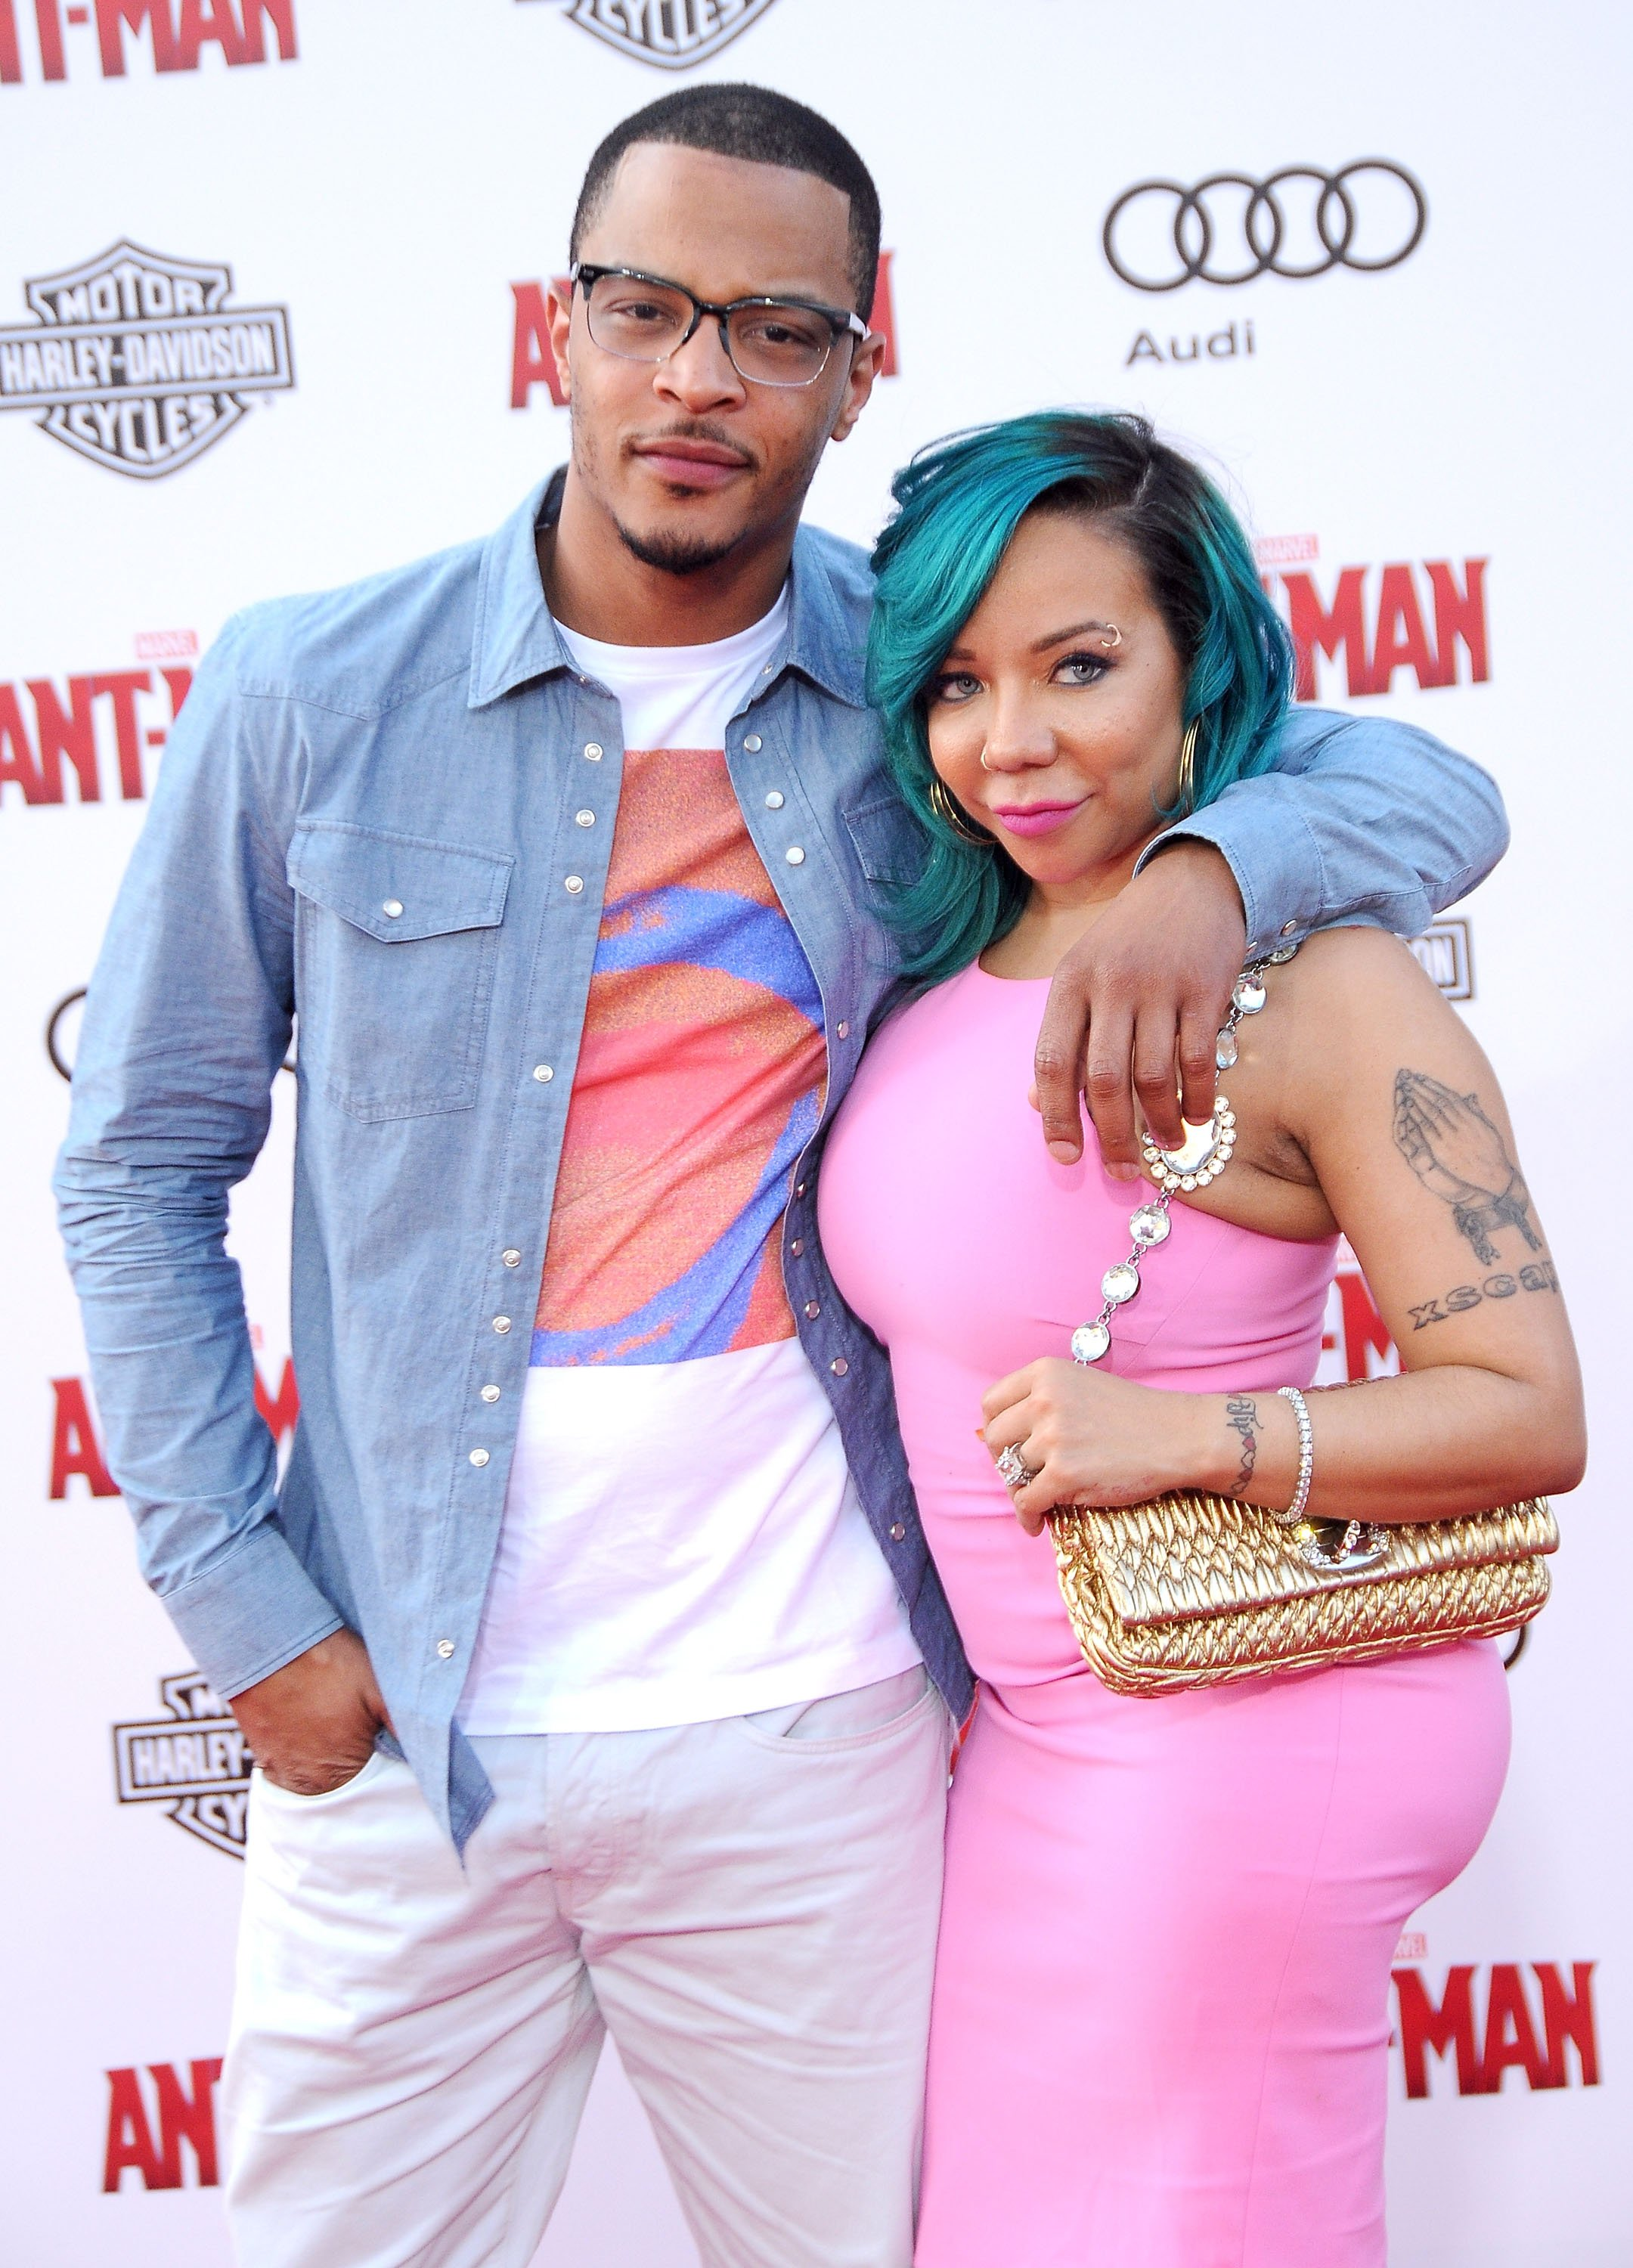 T.I. and Tiny at the Premiere of 'Ant-Man' at Dolby Theatre on June 29, 2015 in Hollywood, California. | Photo: Getty Images